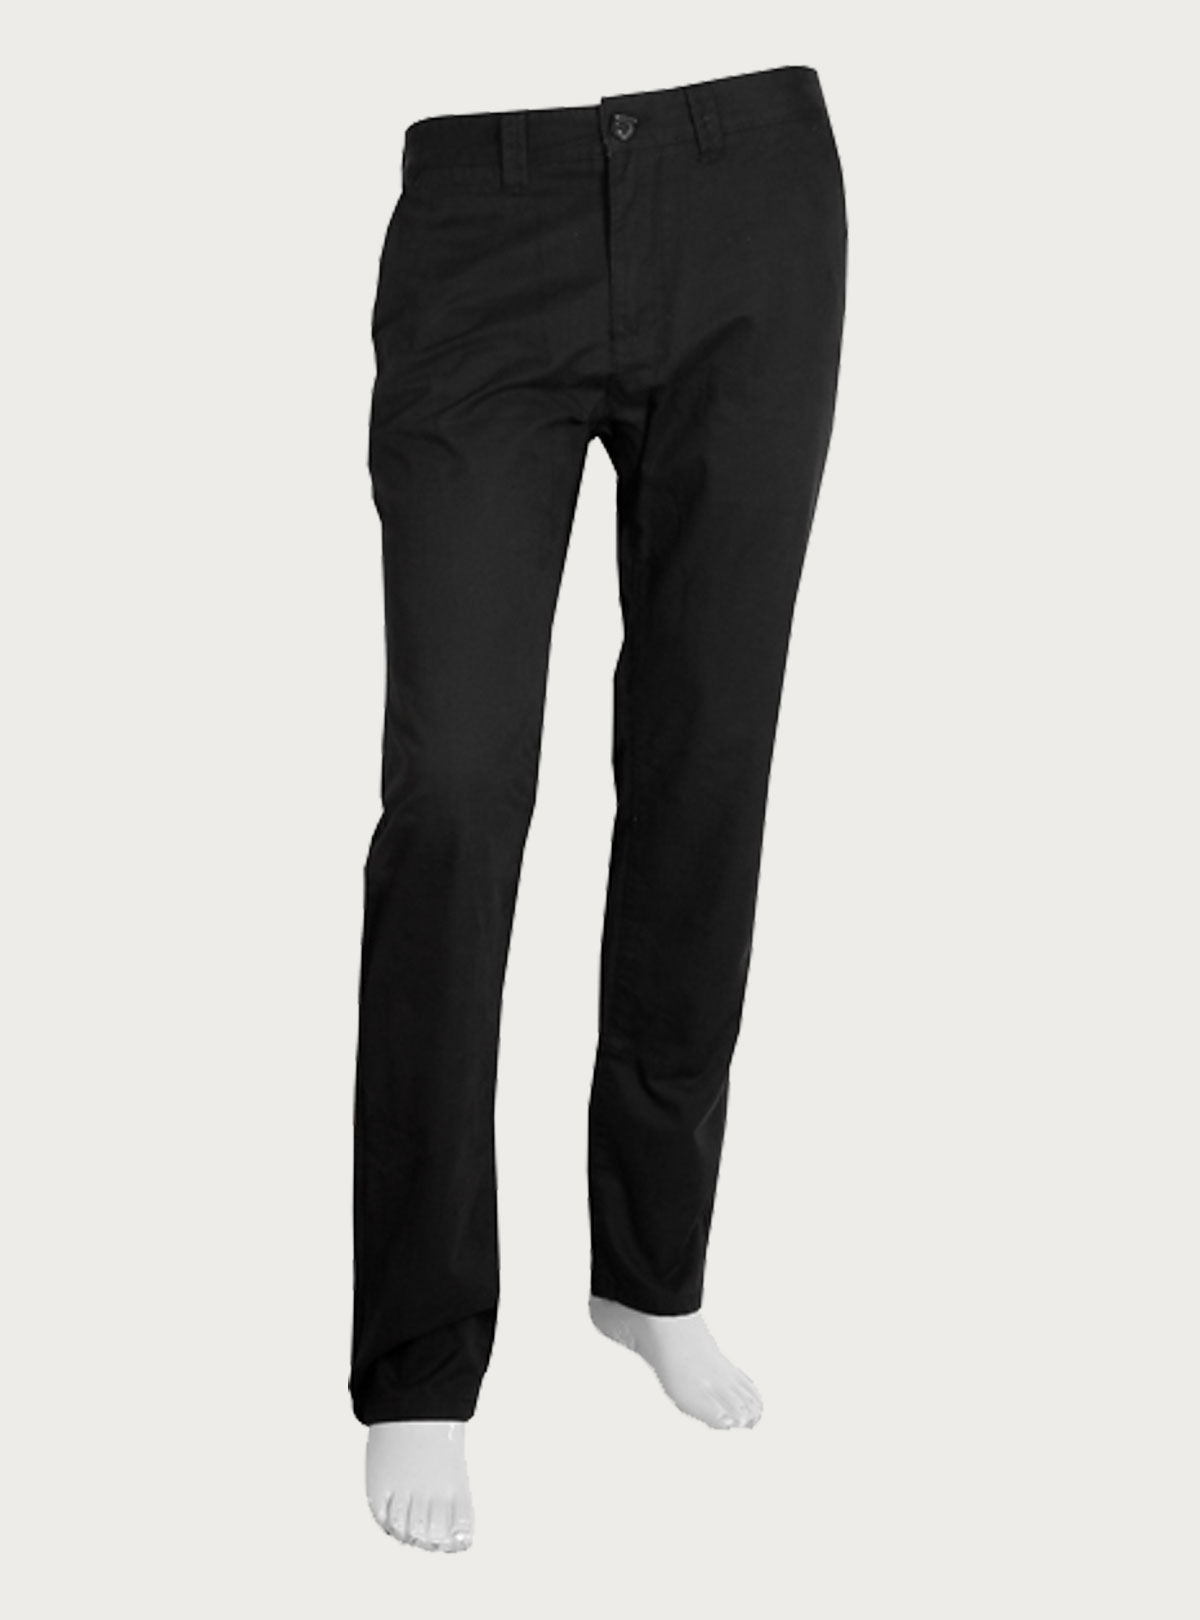 Stylish Gabardine Pant